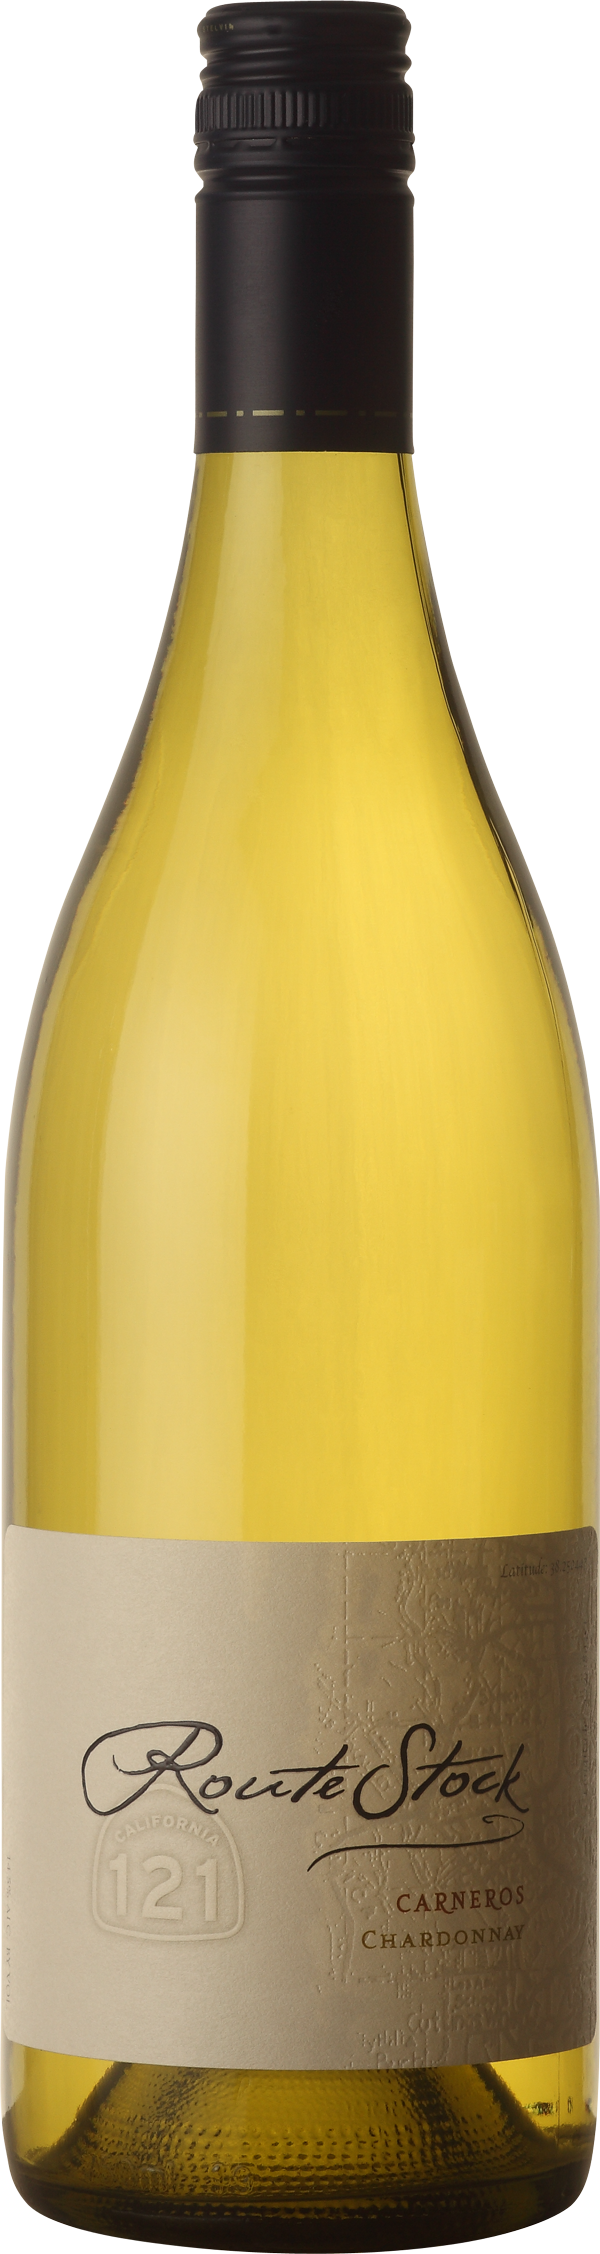 2019 Route Stock Route 121 Carneros Chardonnay 750ml